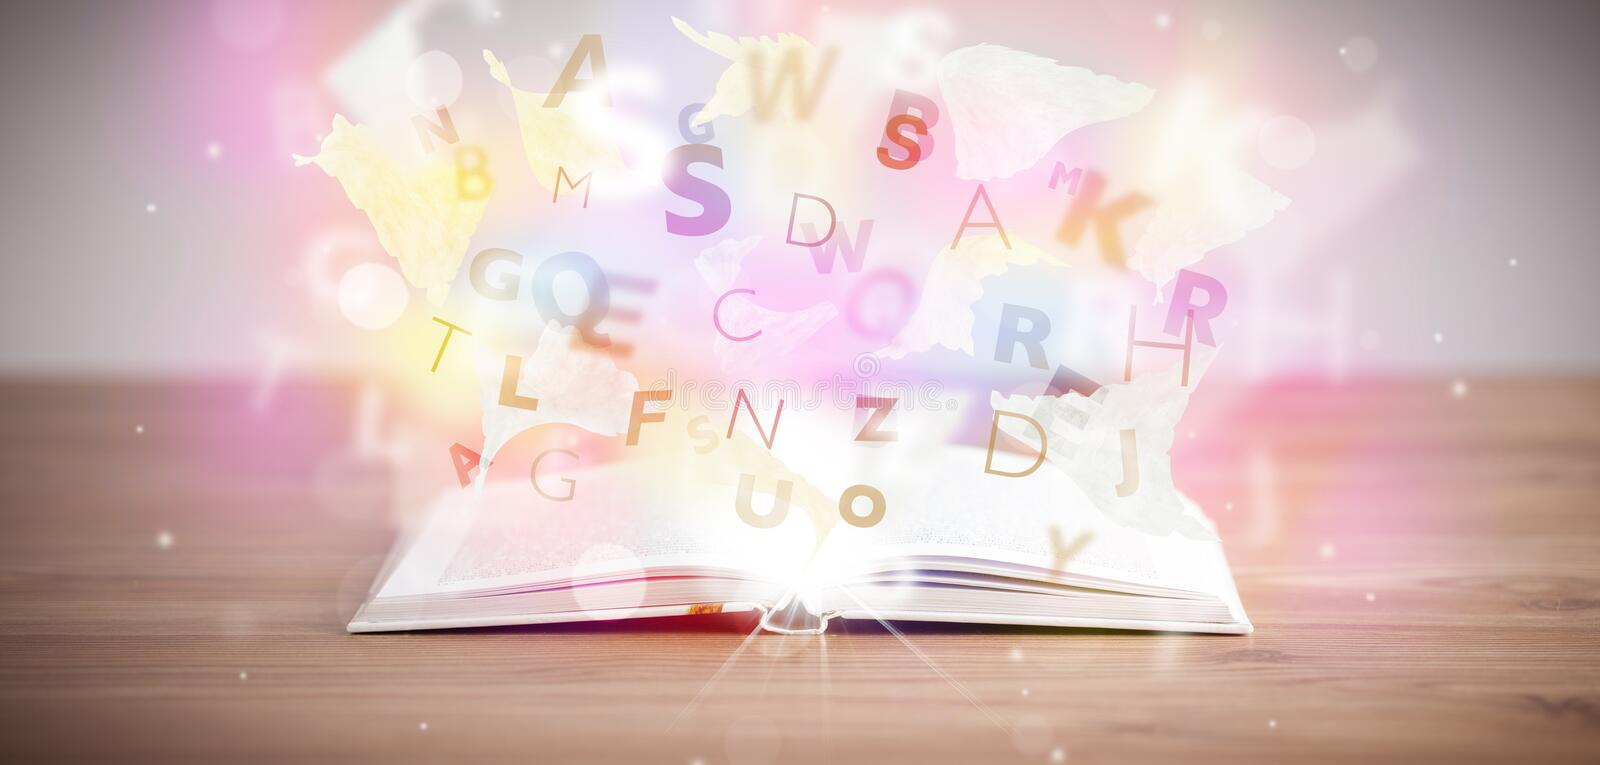 Open book with glowing letters on concrete background. Colorful education concept royalty free stock photo